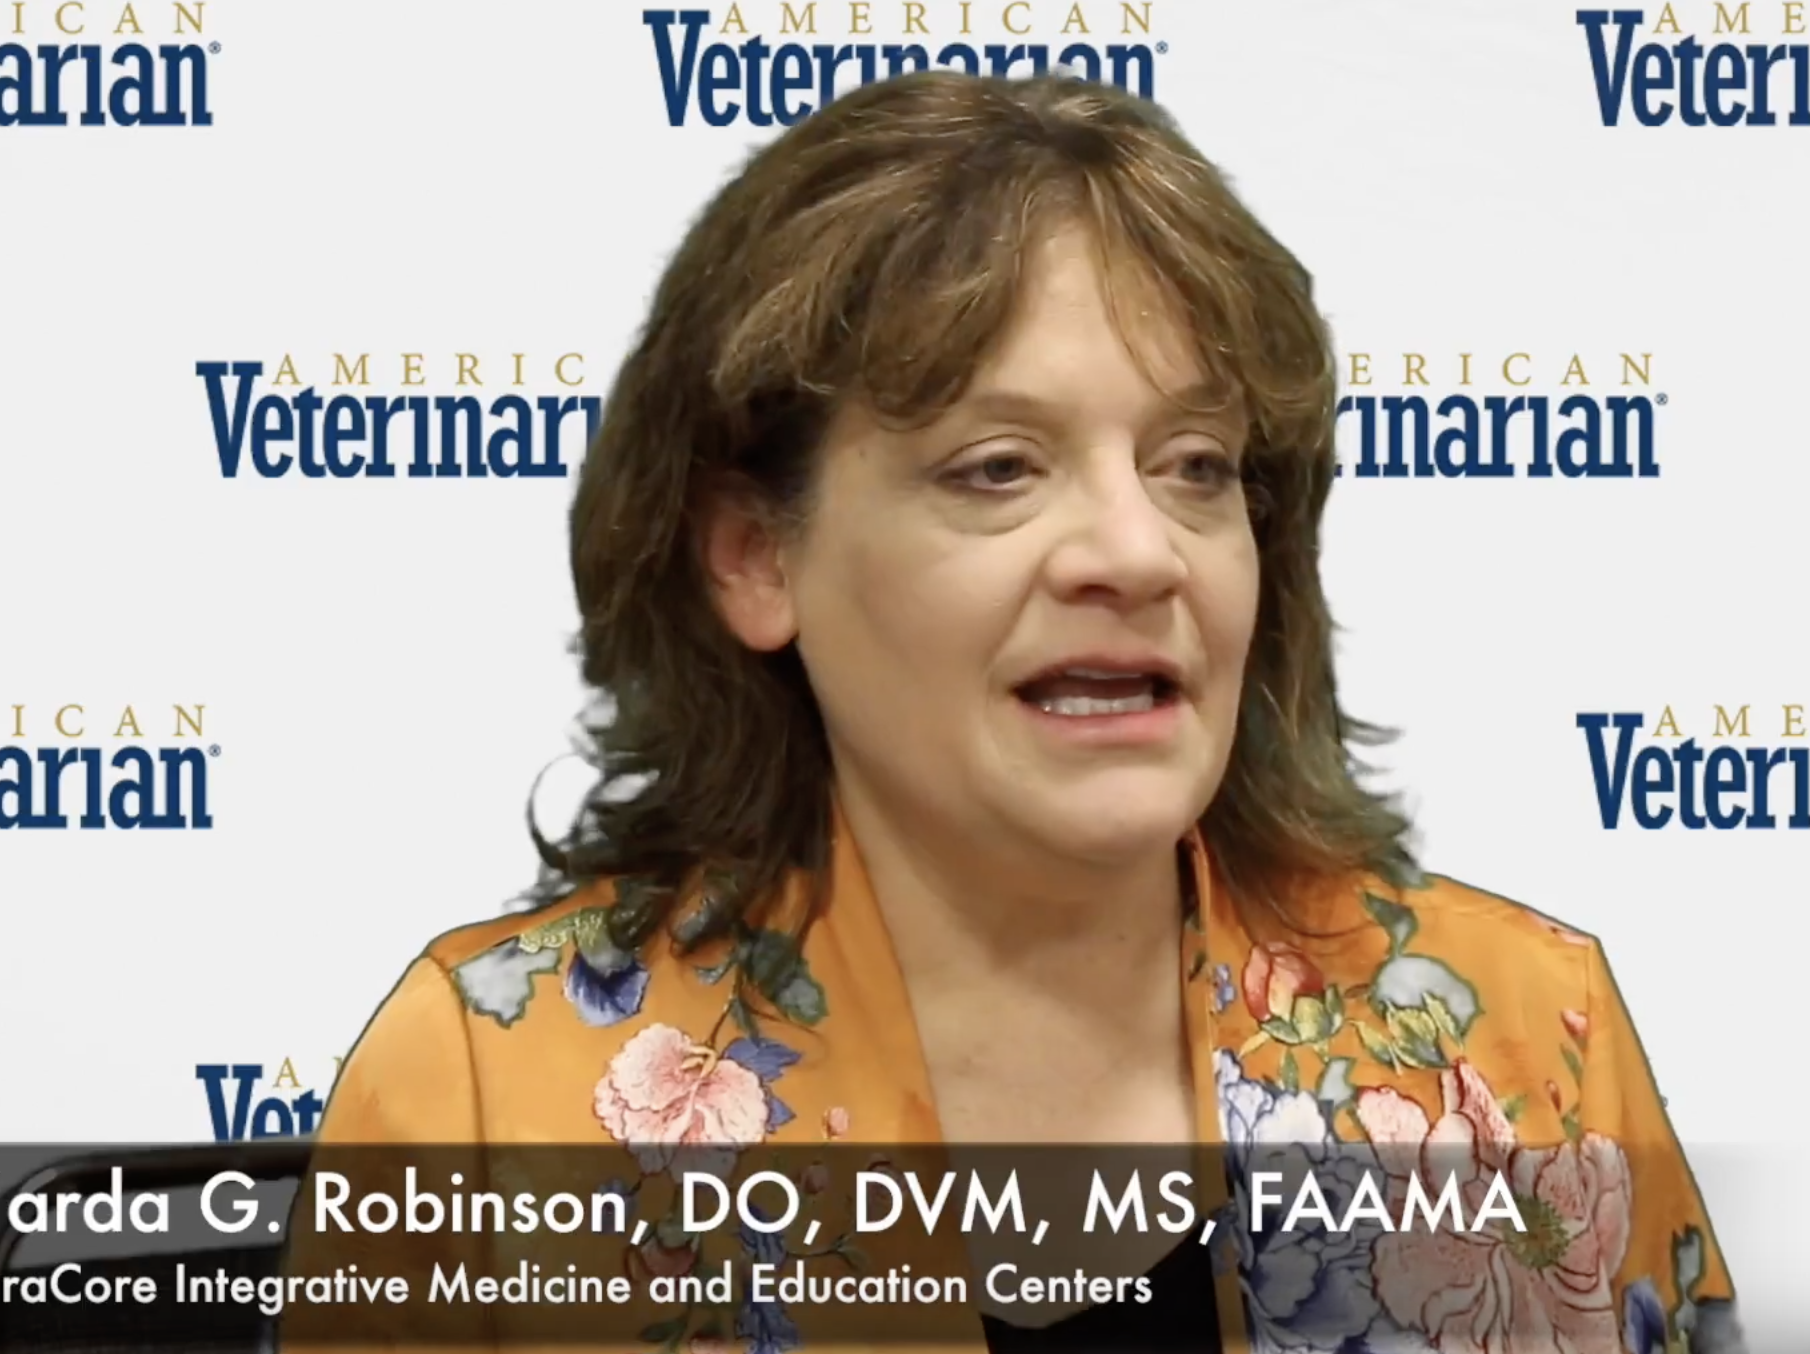 Using Acupuncture in Veterinary Medicine – American Veterinarian